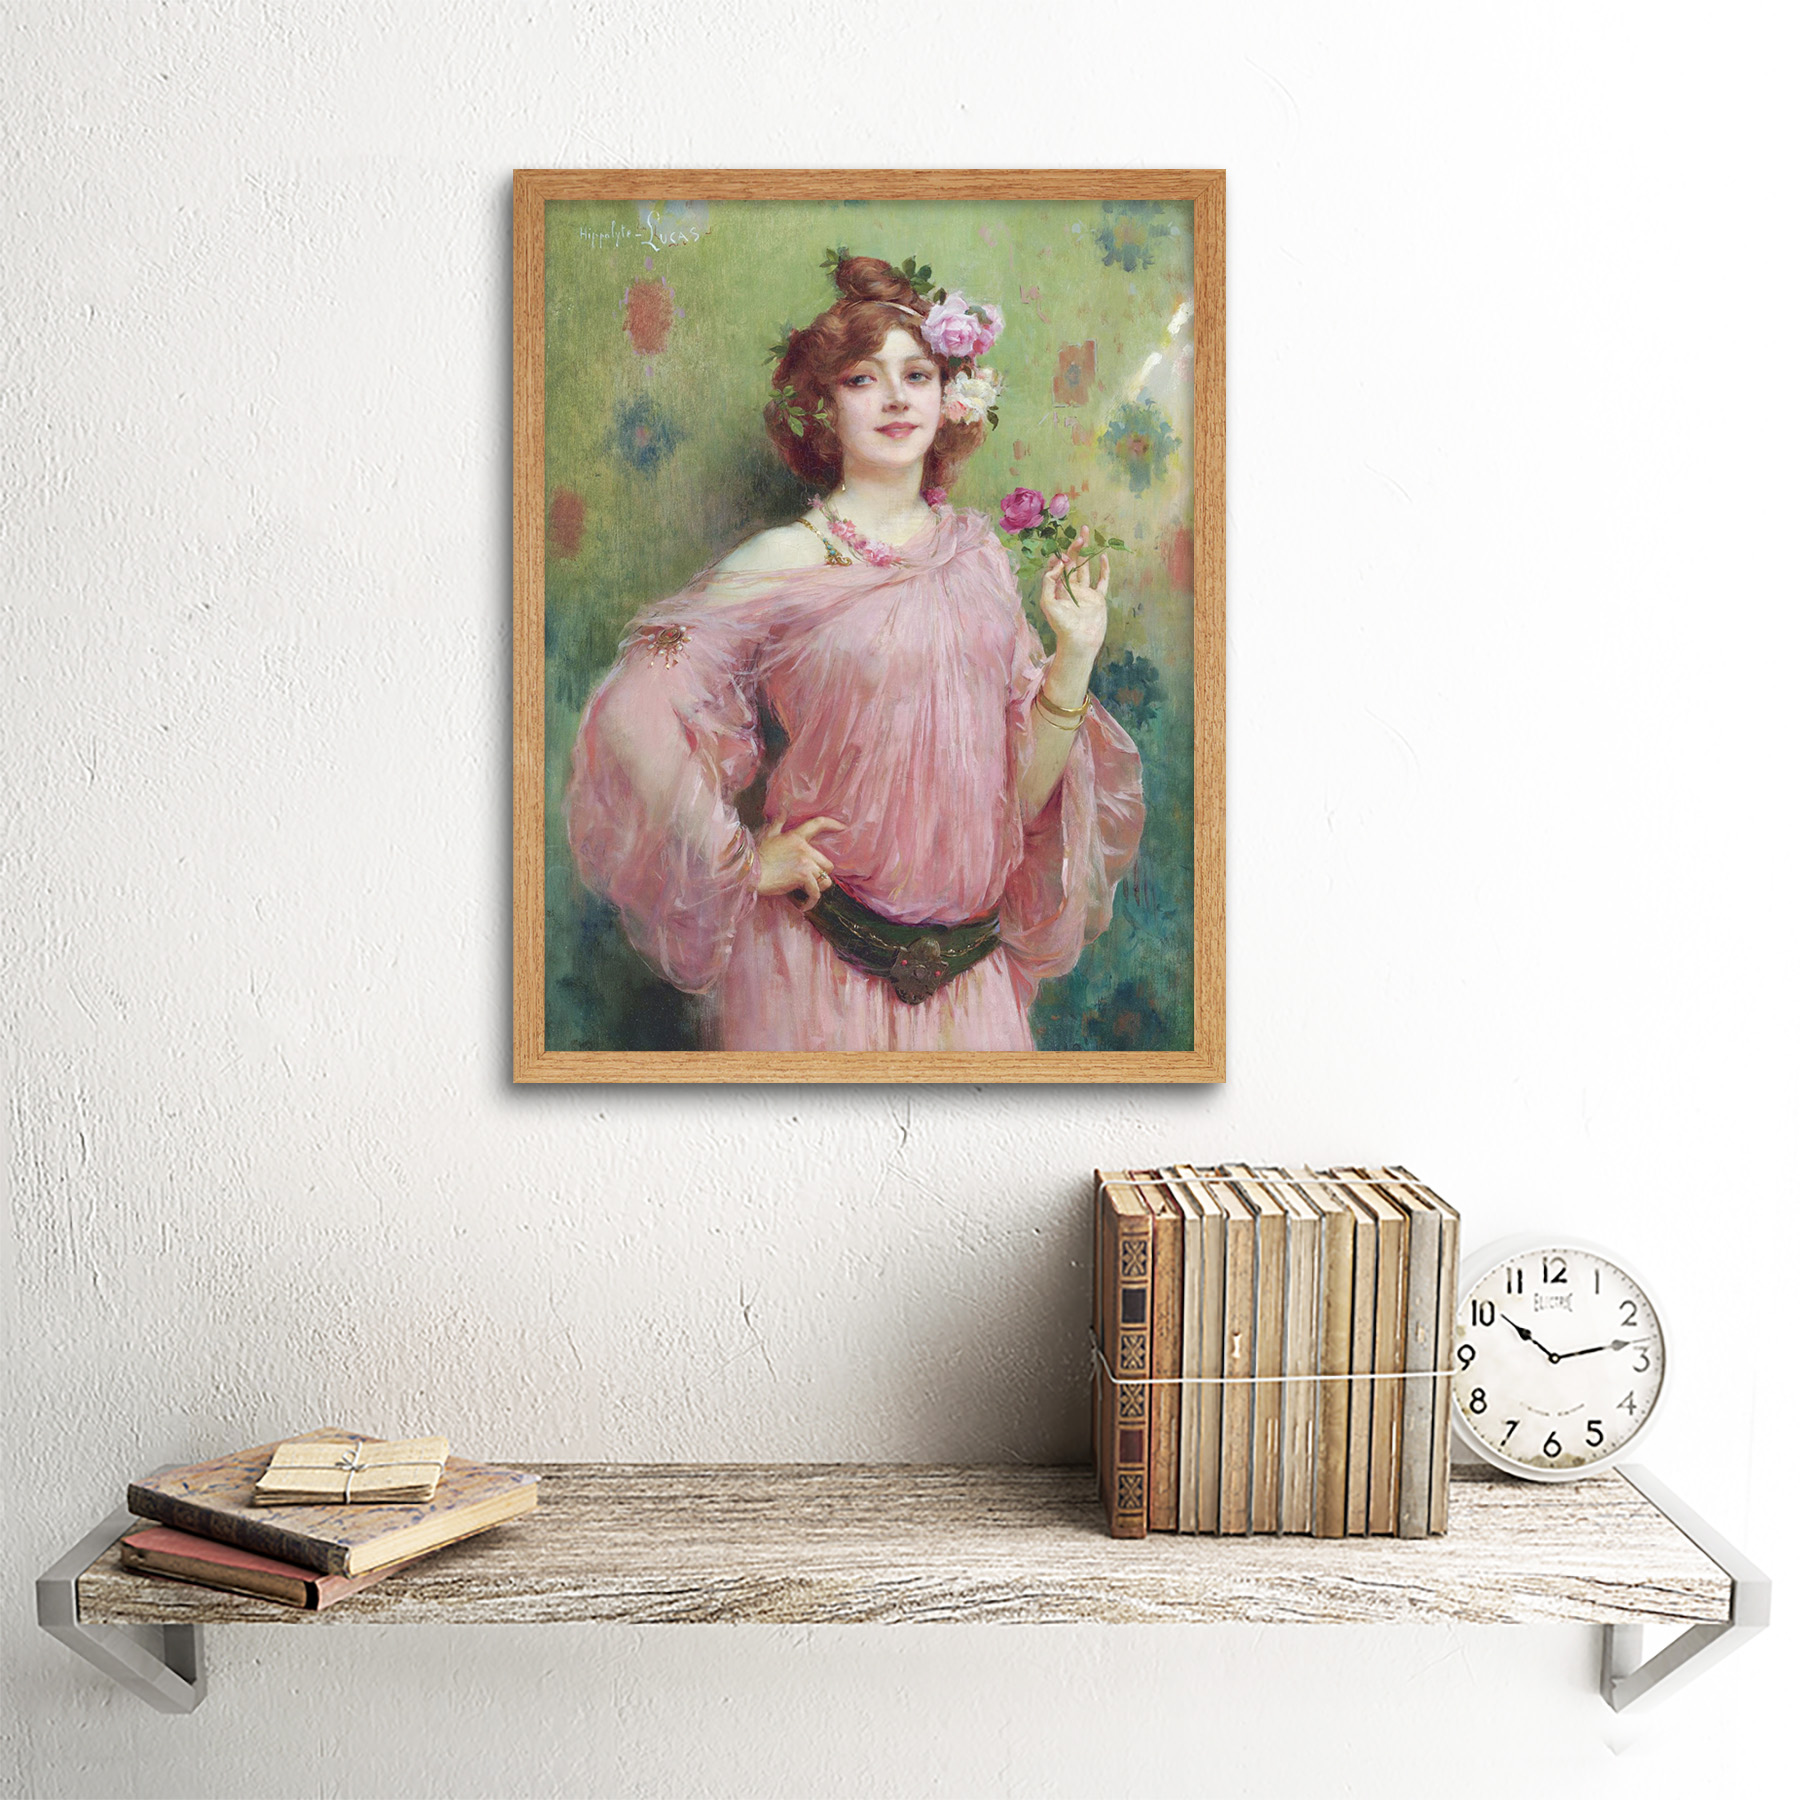 Hippolyte-Lucas-Beauty-In-Pink-Woman-Flowers-Painting-Art-Print-Framed-12x16 thumbnail 13